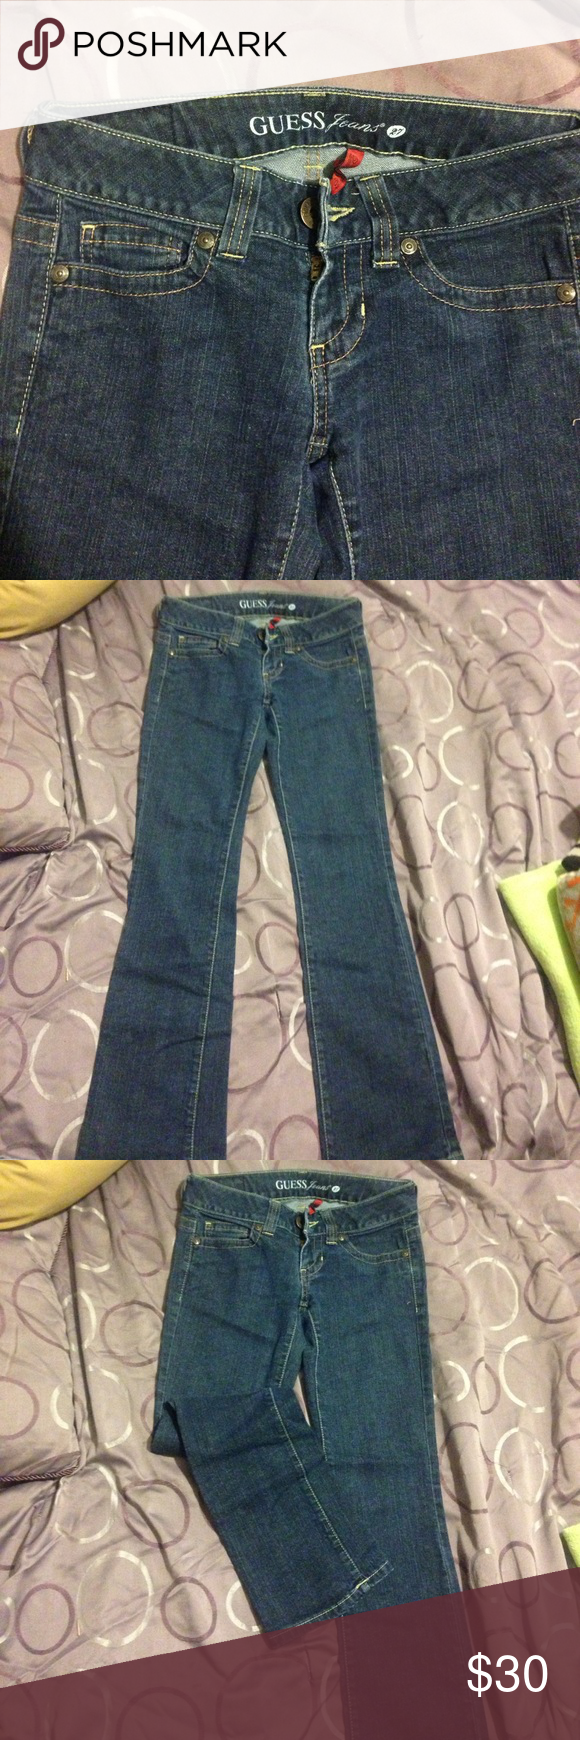 Guess jeans Guess jeans boot cut size 27 Guess Jeans Boot Cut